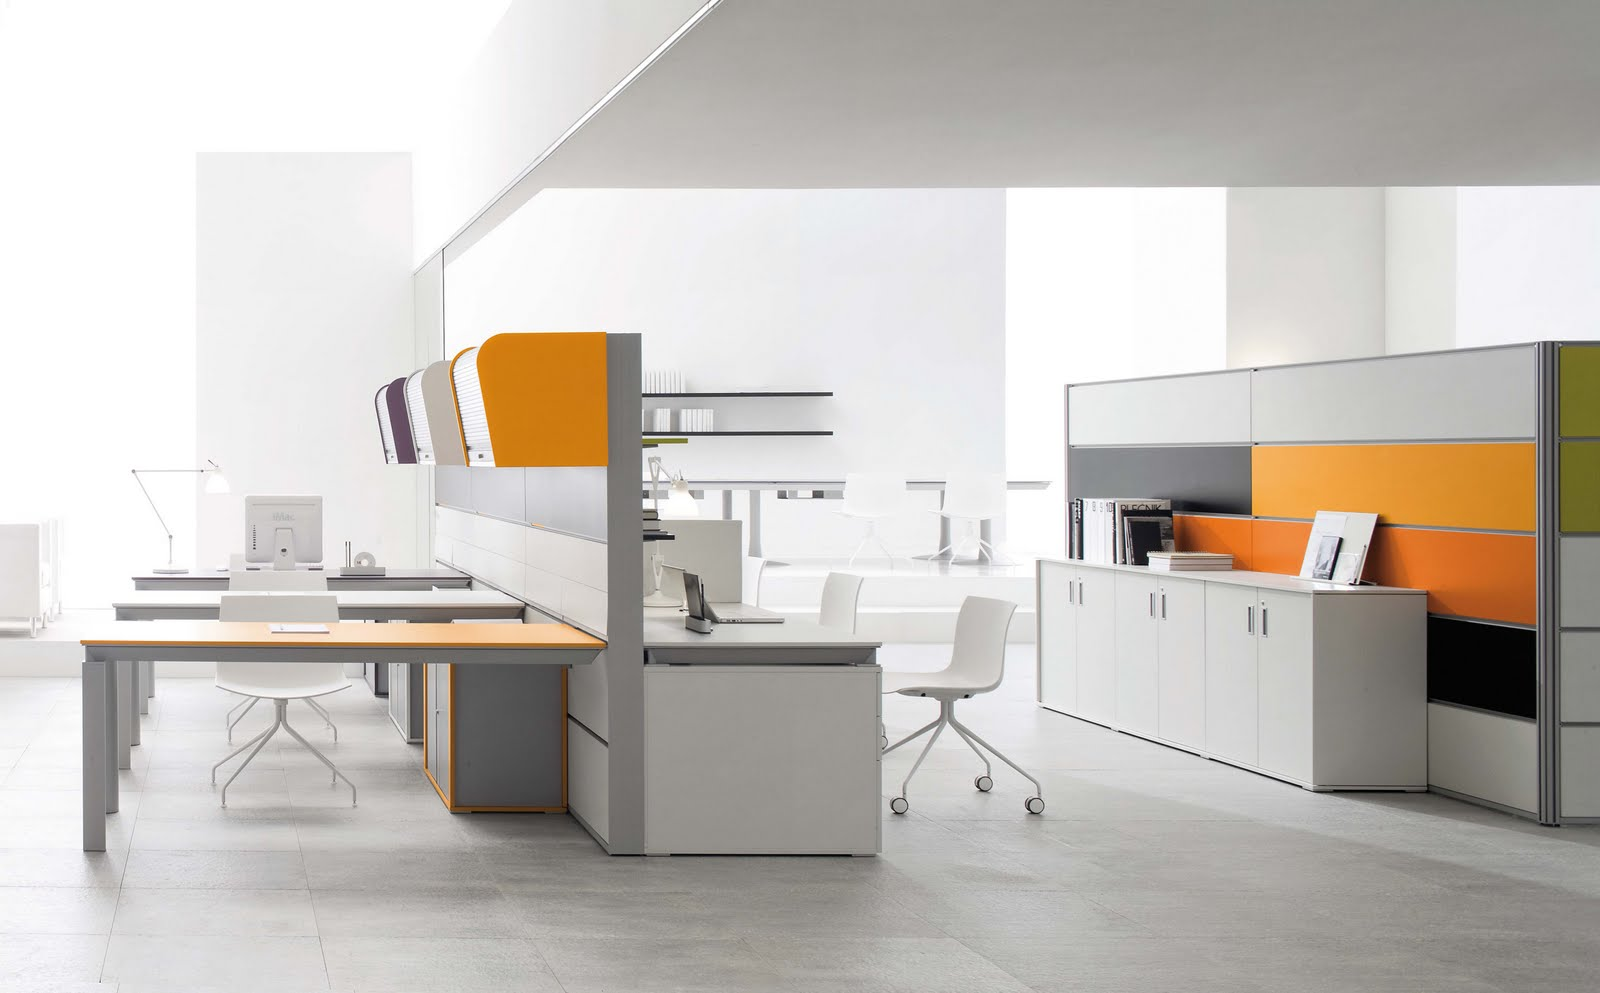 Sleek Modern Office Furniture Makes Stylish And Cool Office Atmosphere : Elegant Modern Office Furniture White Interior Grey Accents Desk